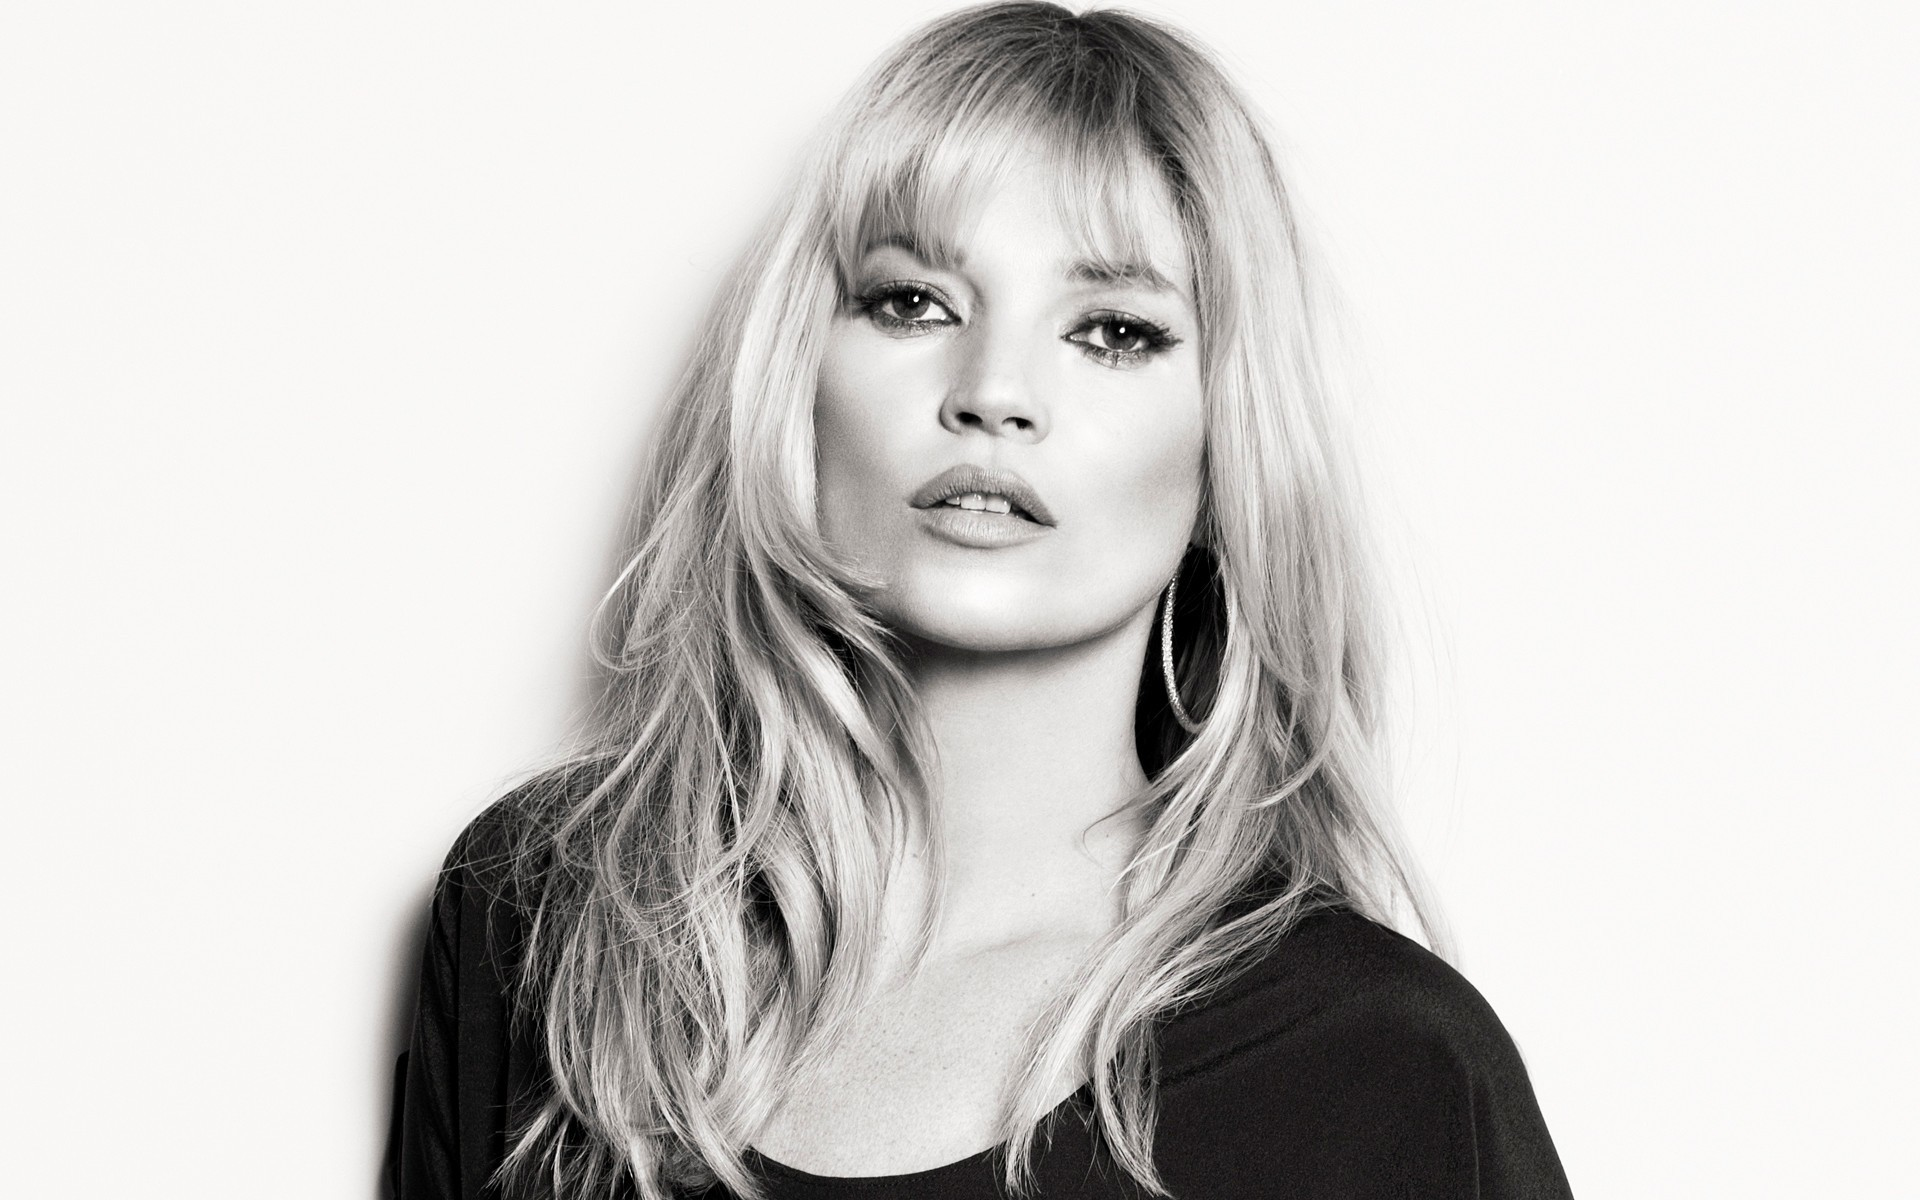 Res: 1920x1200, Kate Moss Wallpapers 2 - 1920 X 1200